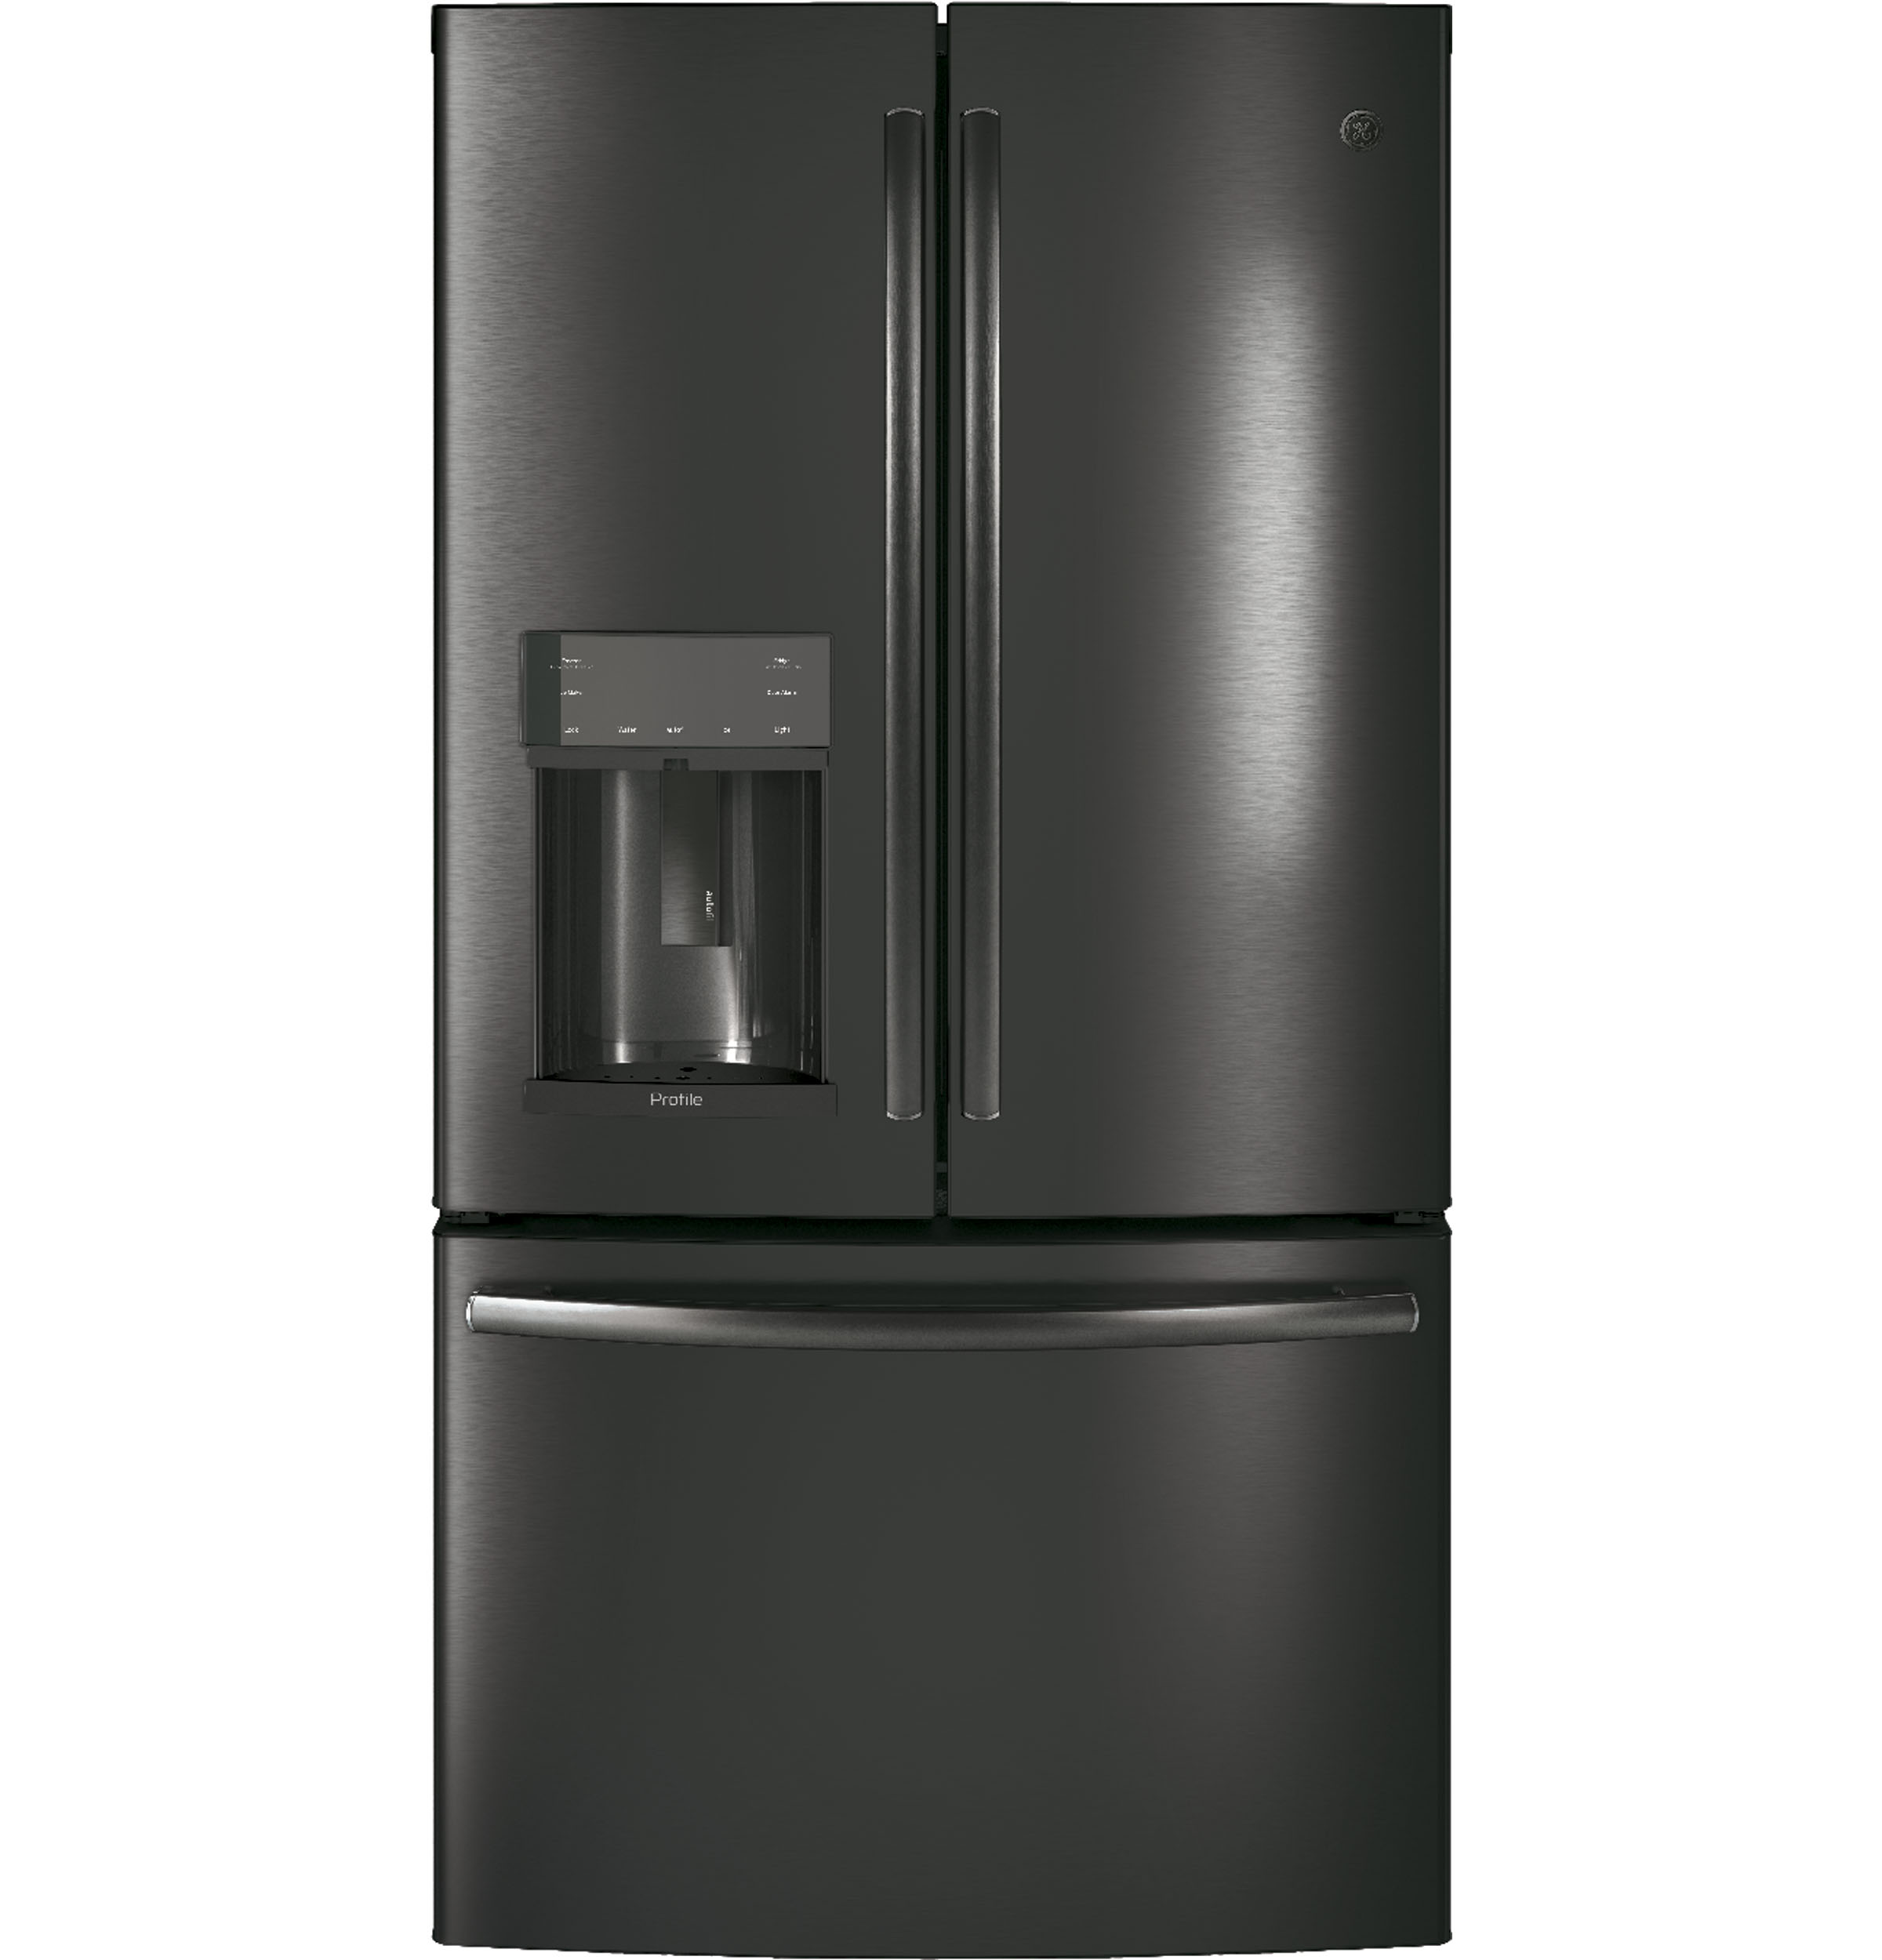 GE Profile GE Profile™ Series ENERGY STAR® 27.7 Cu. Ft. French-Door Refrigerator with Hands-Free AutoFill